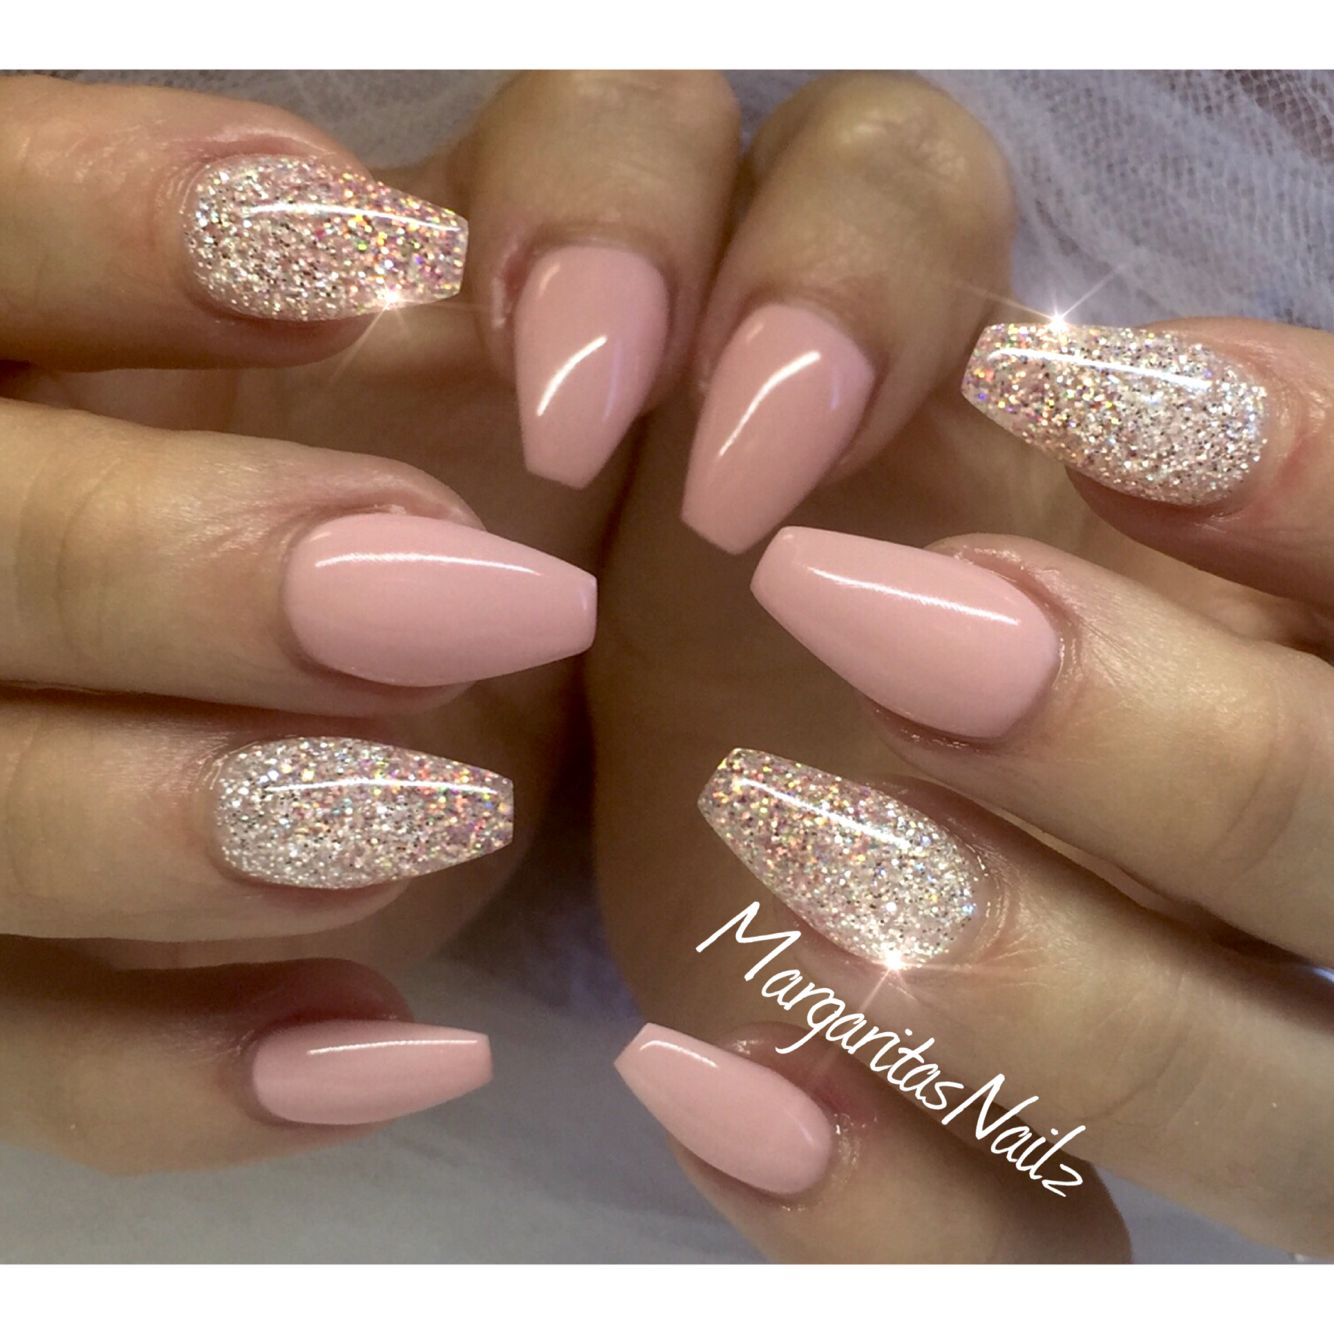 Nude Pink Glitter Nails More Nails Pink Glitter Nails Nails Glitter Nails